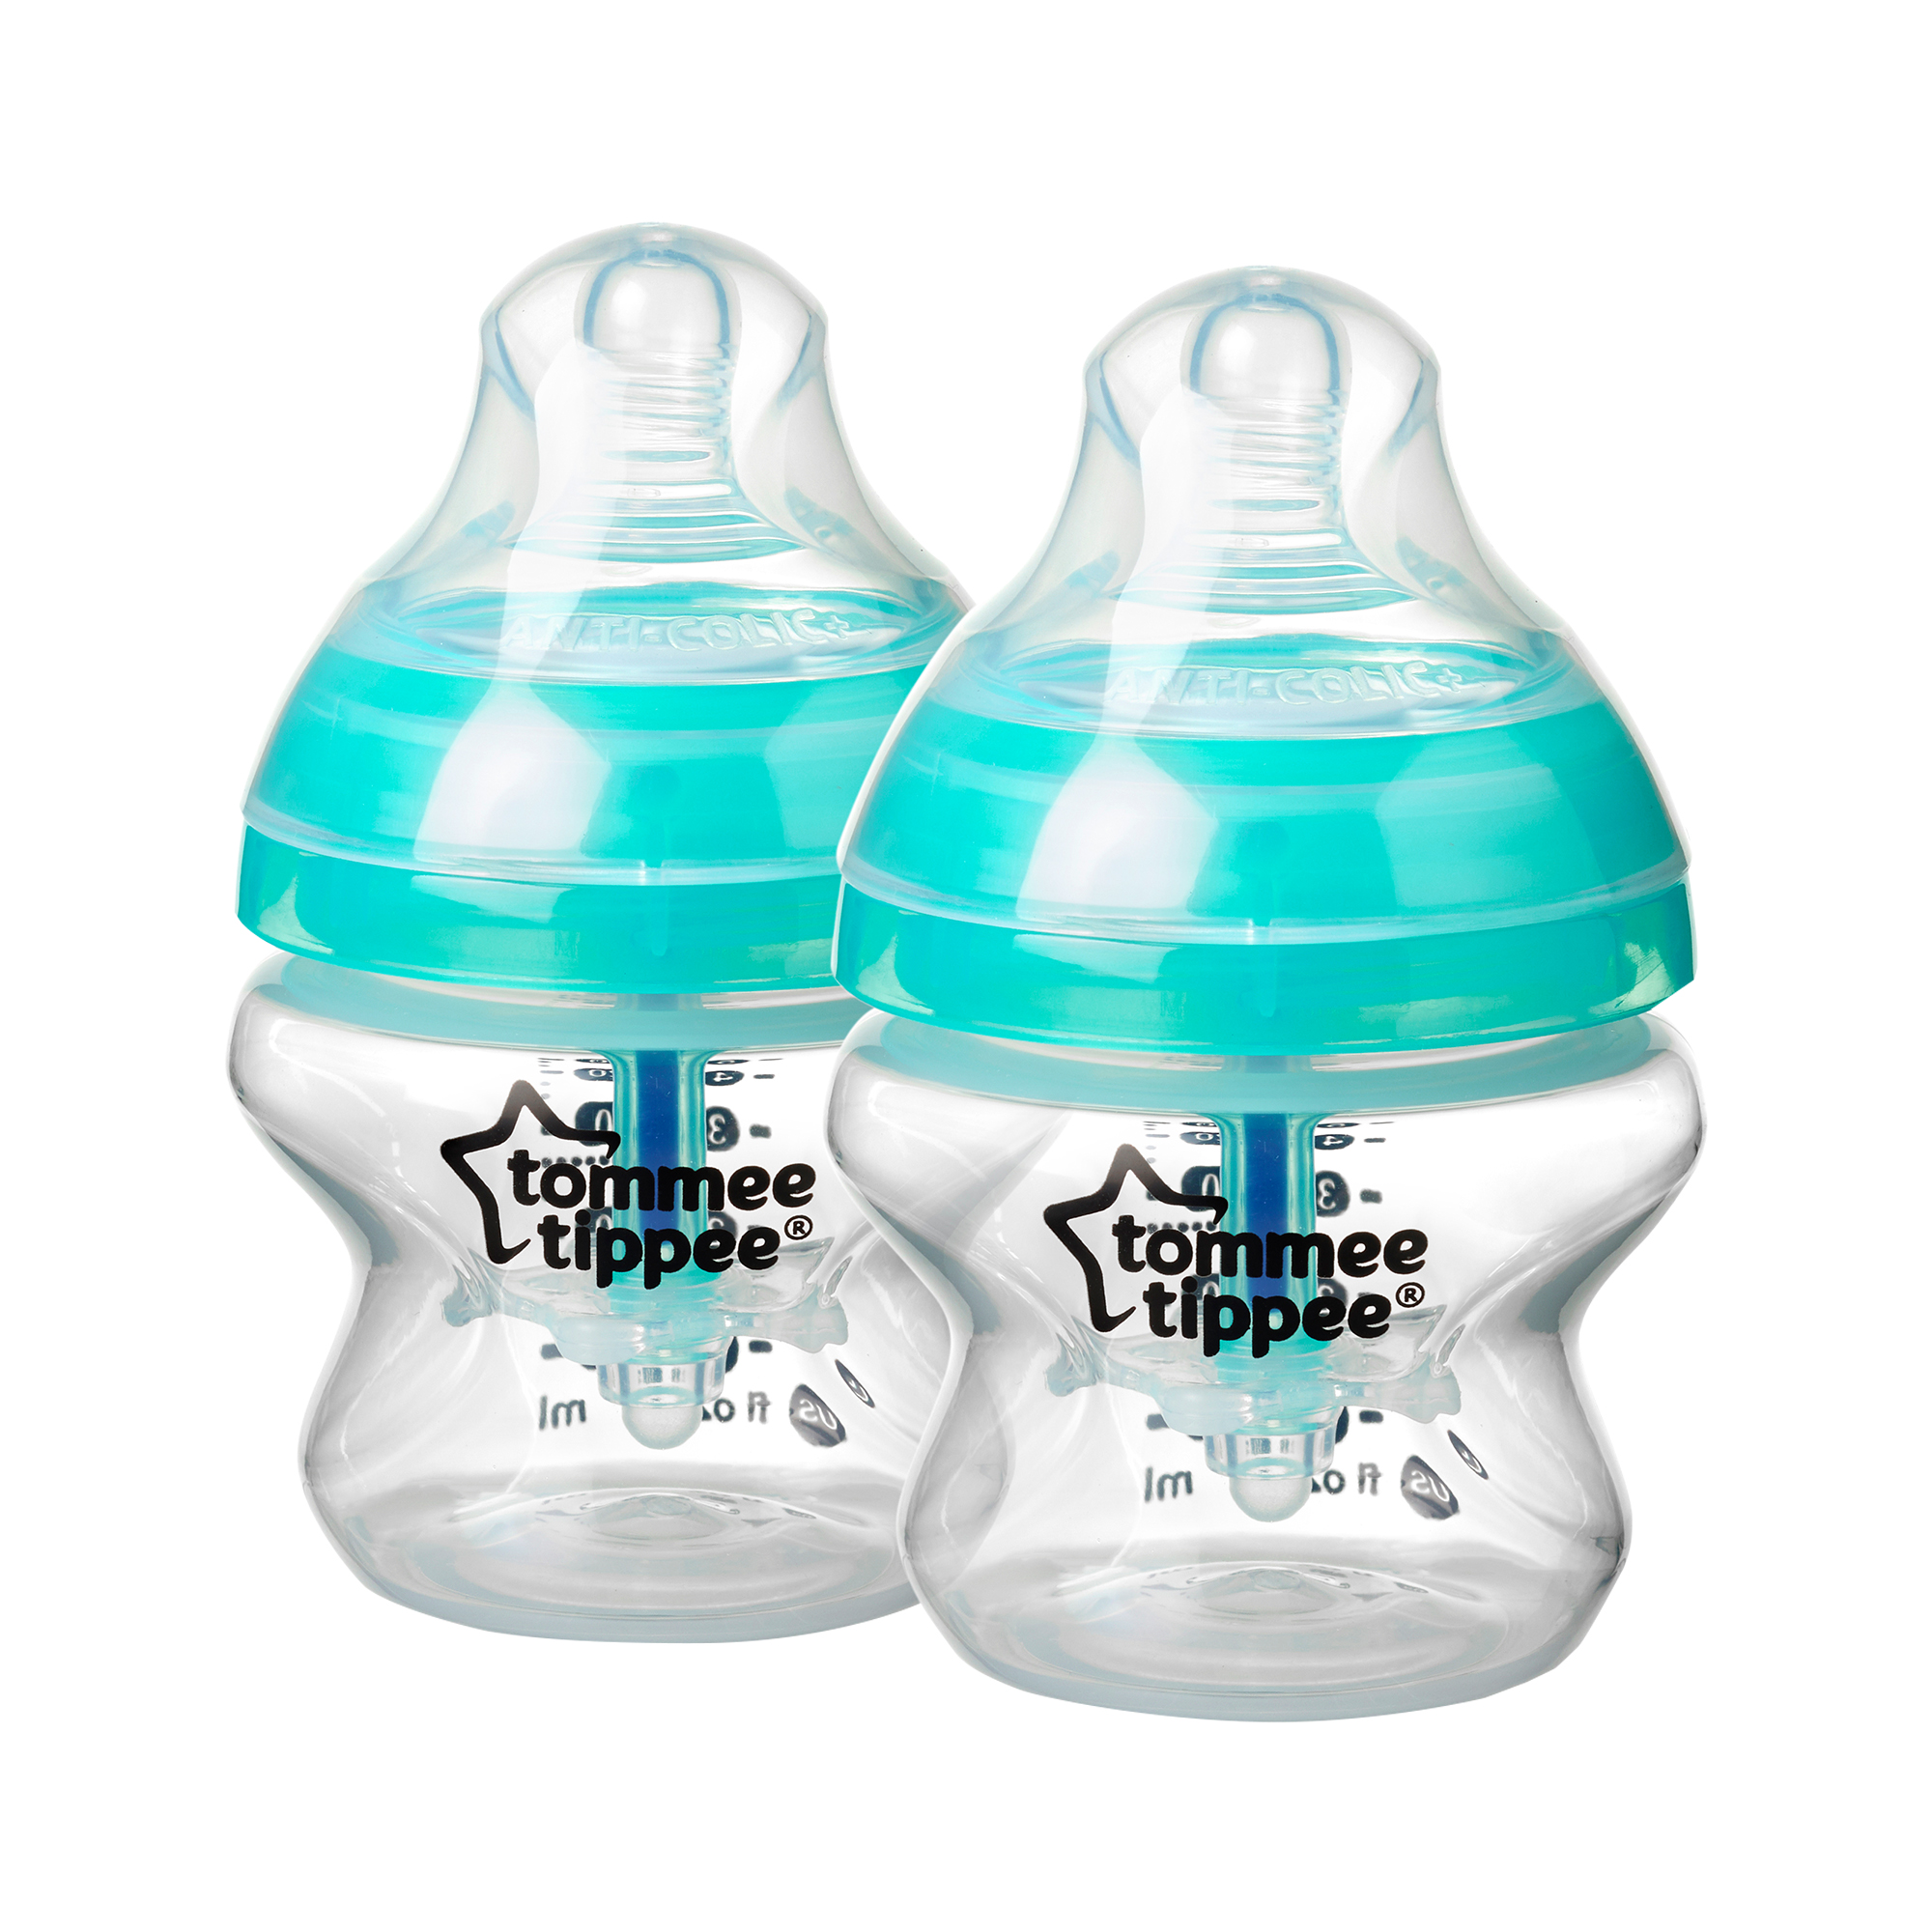 Tommee Tippee Advanced Anti-Colic Baby Bottle - 5oz, 2 Pack